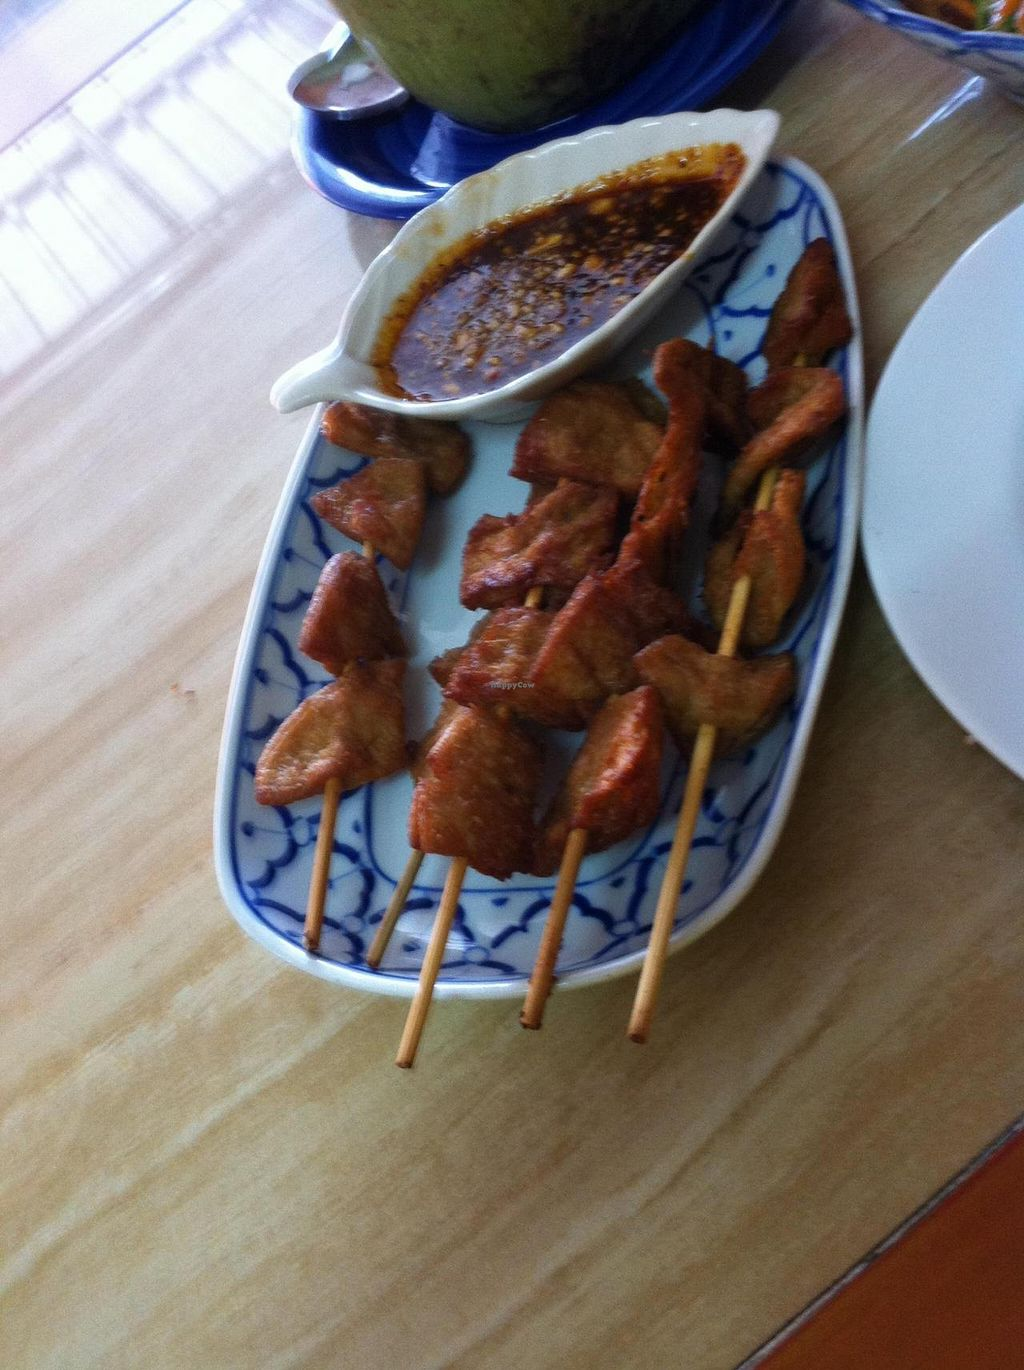 "Photo of CLOSED: Mea Nuu Vegetarian Food  by <a href=""/members/profile/mambous"">mambous</a> <br/>Chicken Satay (veggie protein) with peanut sauce... wow!! <br/> August 28, 2014  - <a href='/contact/abuse/image/50006/78527'>Report</a>"